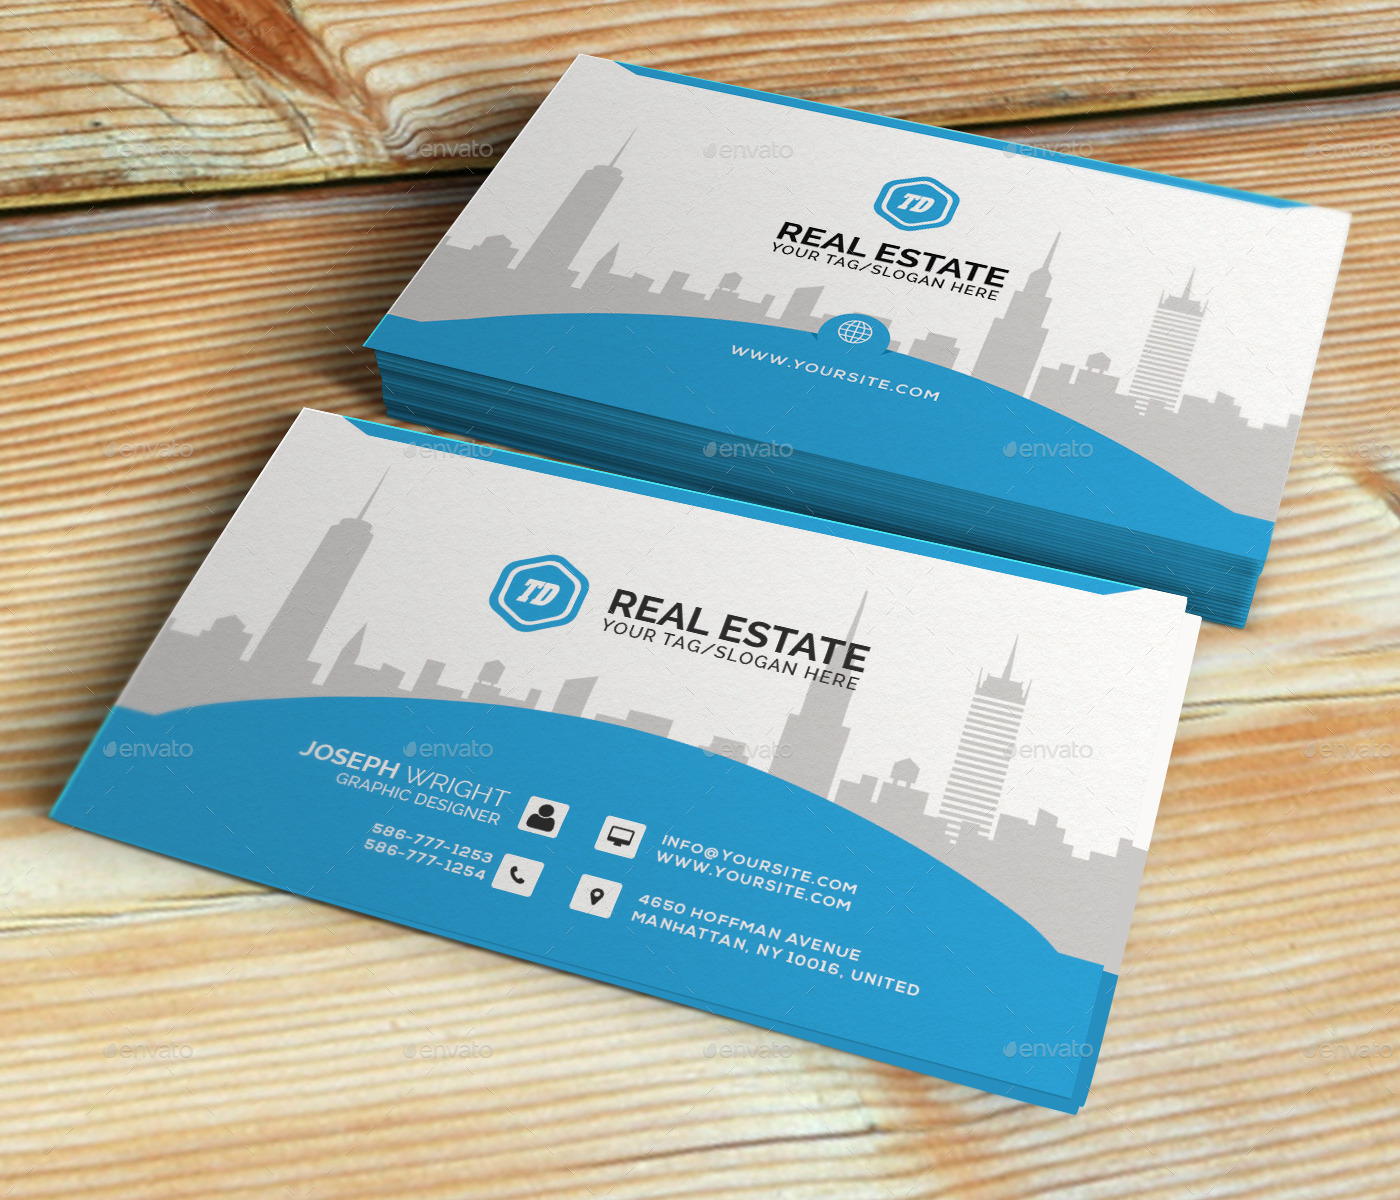 Real estate business card template by themedesk graphicriver real estate business card template corporate business cards previewpreview 00g previewpreview 01g cheaphphosting Images